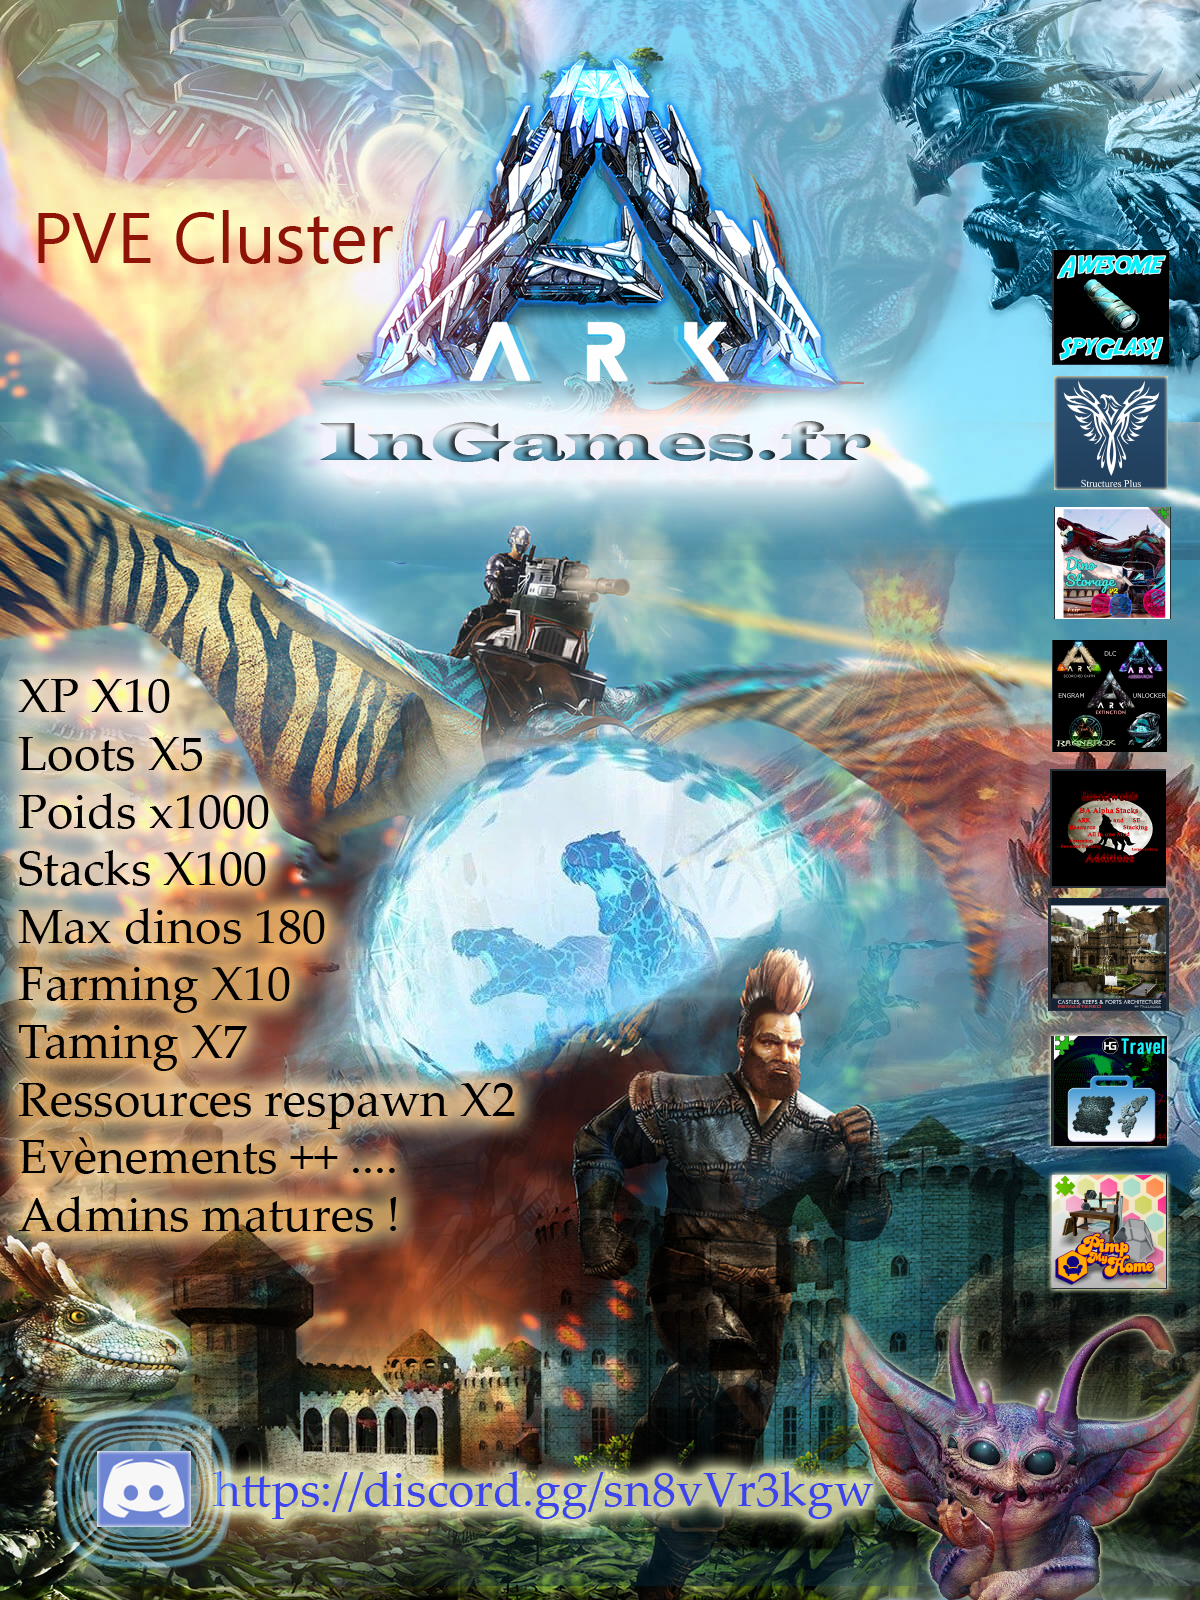 612a503f5791b-1nGames-ARK-PVE-Cluster pve8.png